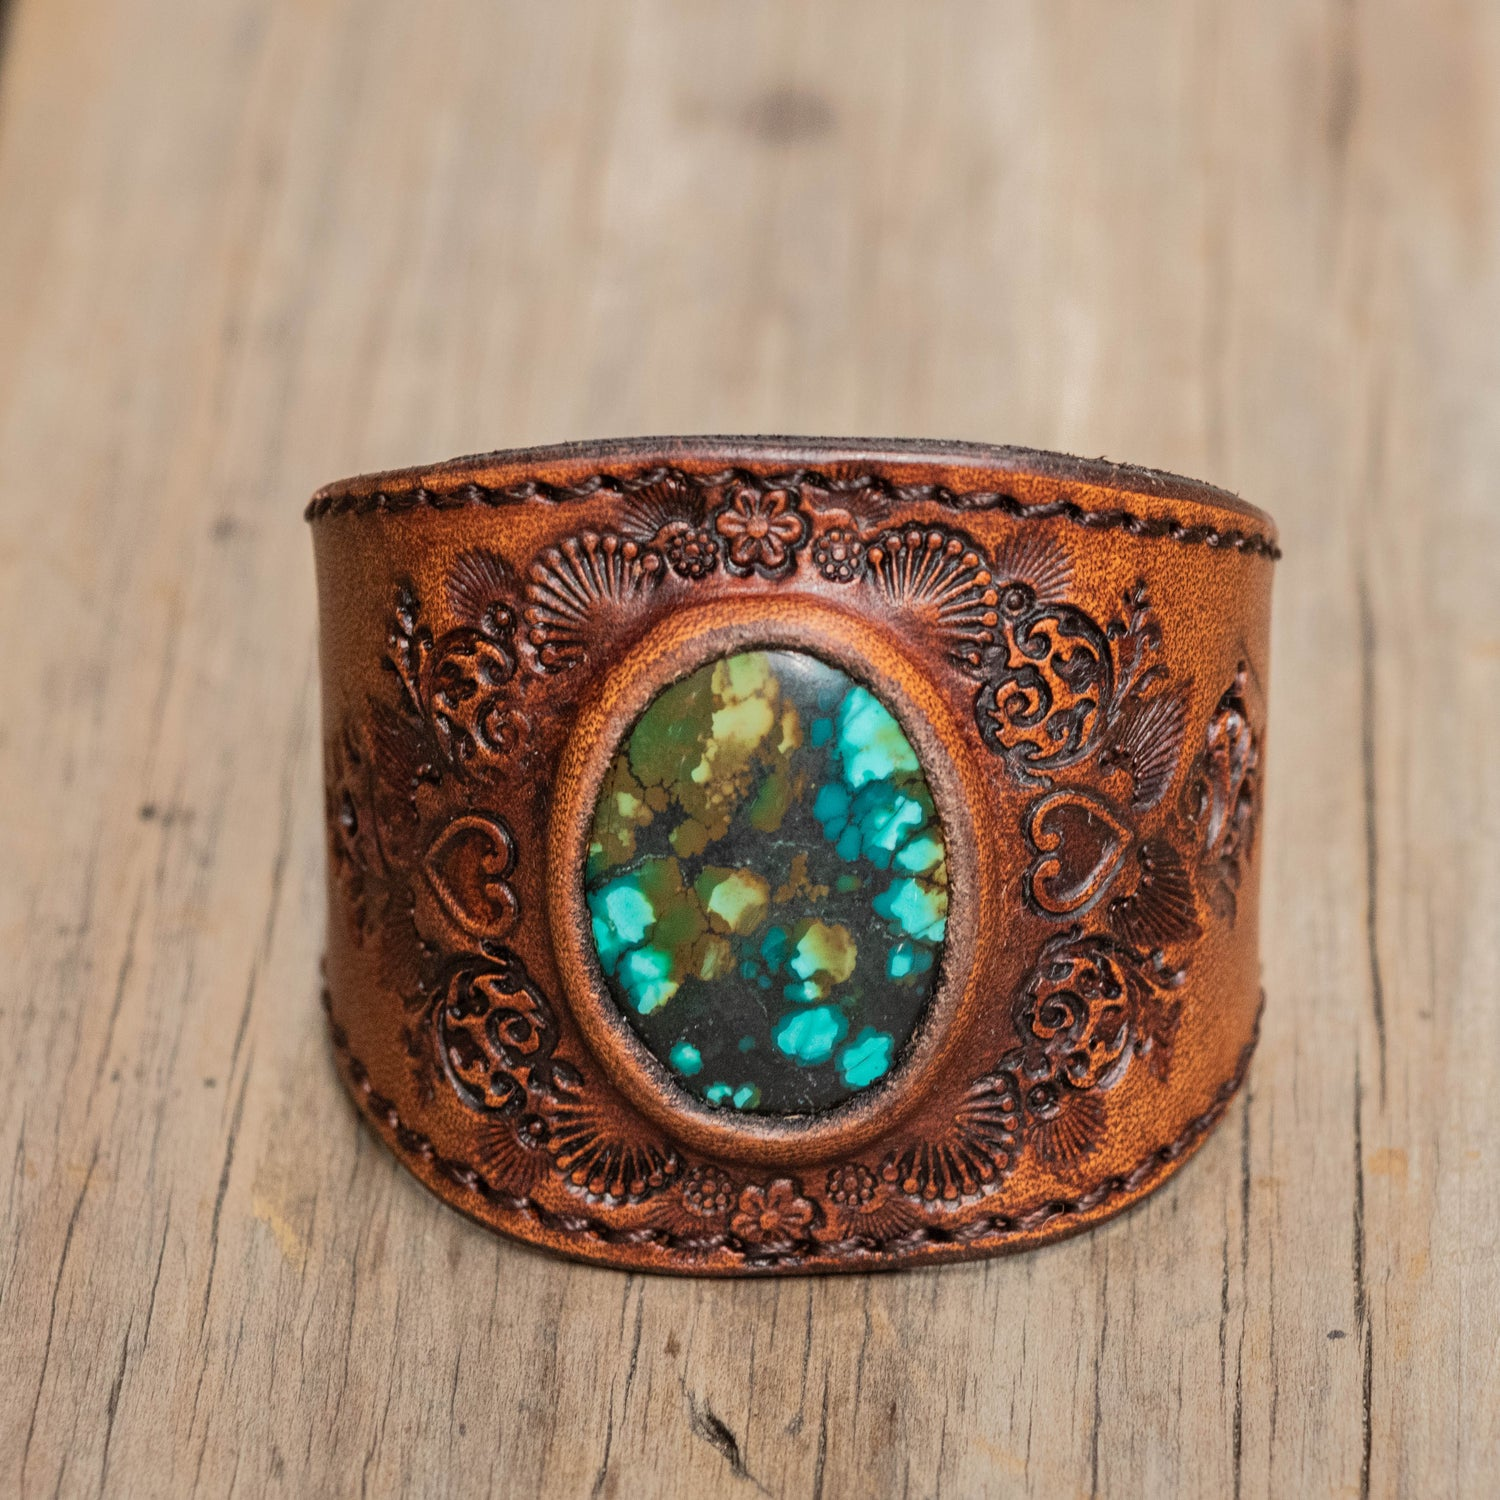 Mandala Cuff with High Grade Turquoise - Buffalo Girl